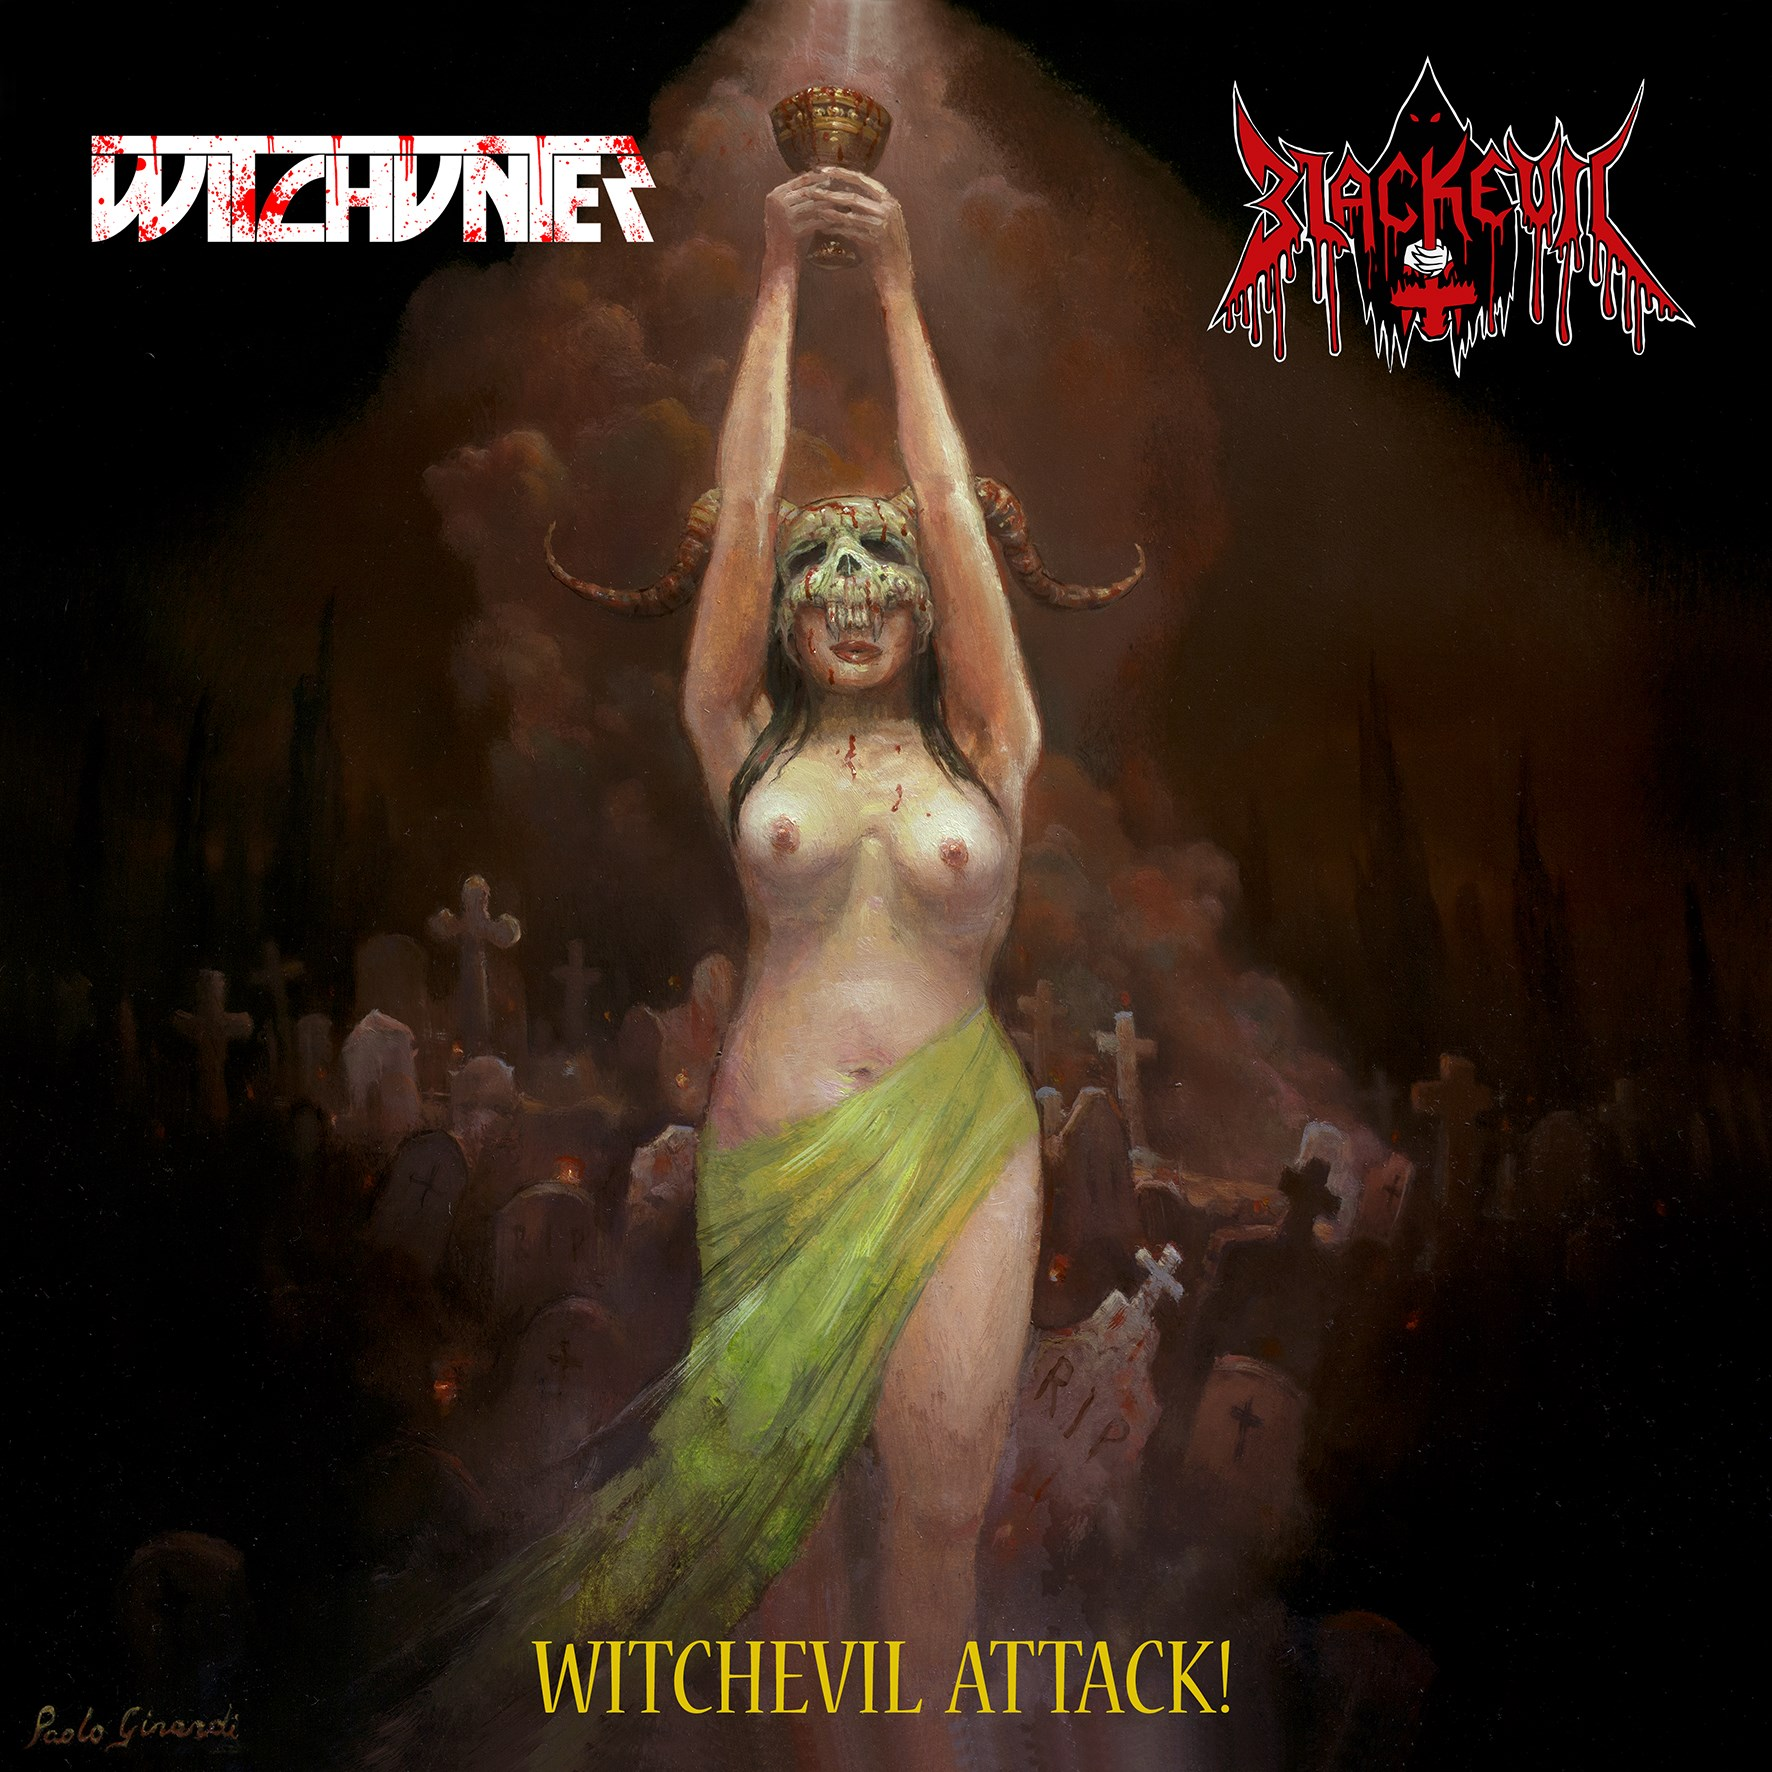 WITCHUNTER / BLACKEVIL - Witchevil Attack!